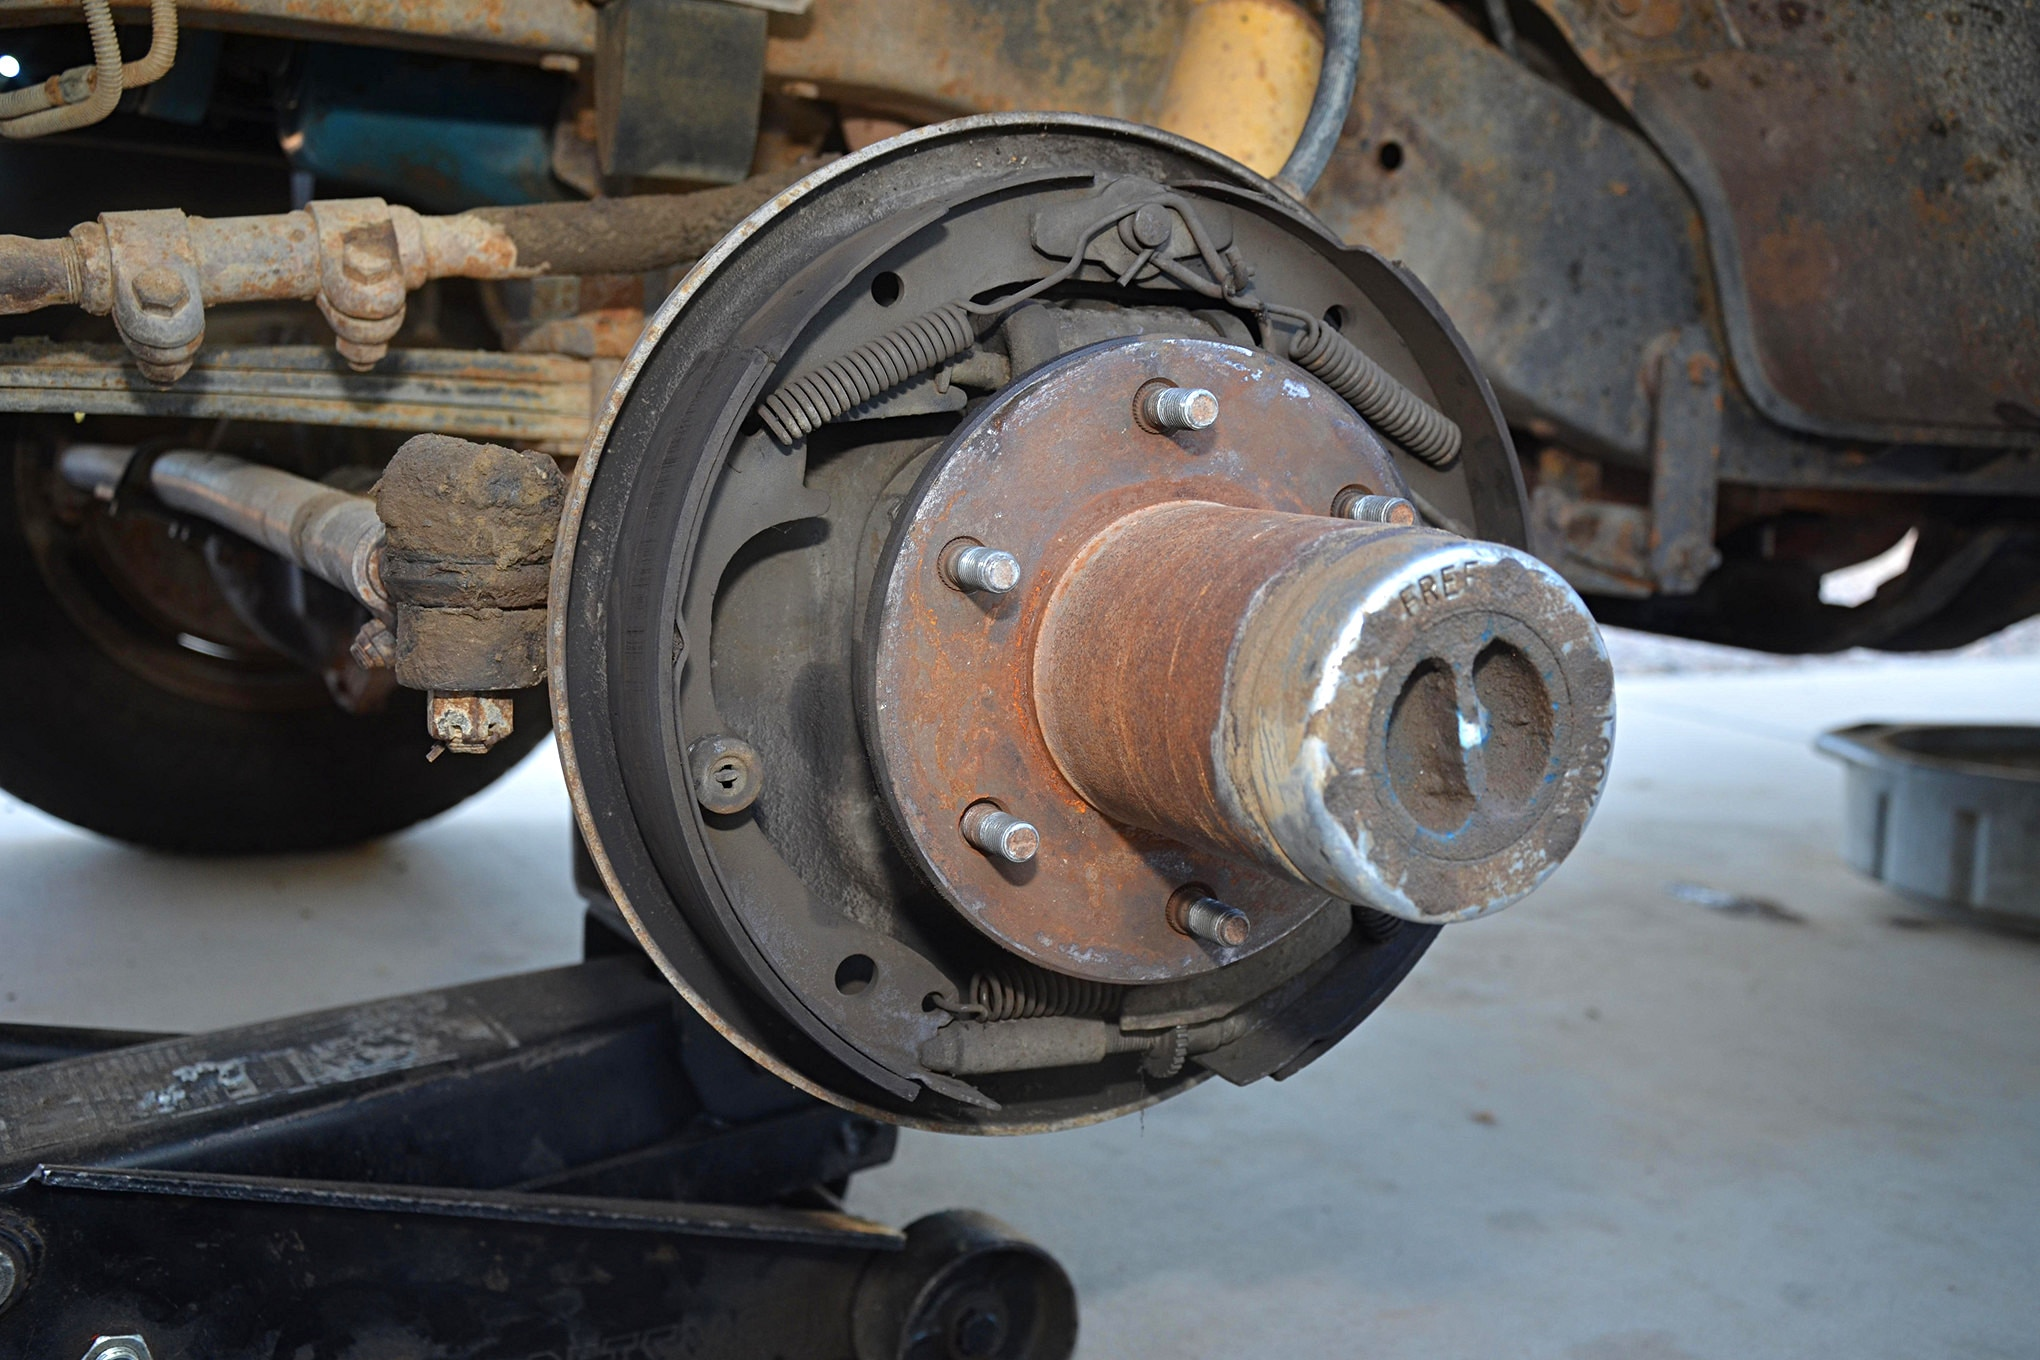 Various pins and springs allow the shoes (arrows) to move, allow parking brake systems to function, and servicing the brakes as they wear. At the bottom, an adjuster allows the brake pads to be moved out toward the drum as the pads and the drum wear. These adjusters are designed to self-tighten, but manual adjustment yields the best performance.